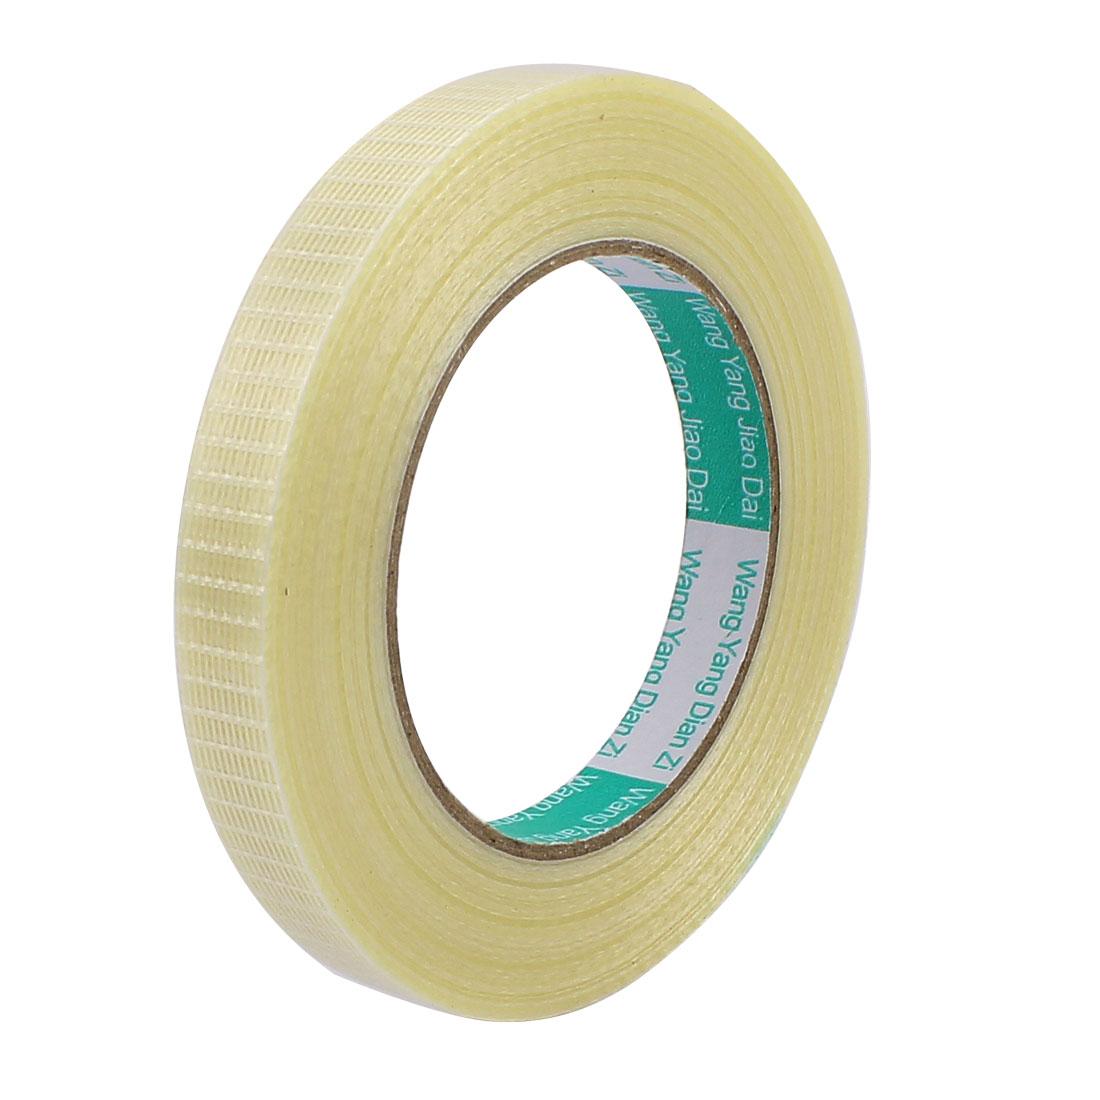 15mm Height 50M Length Long Adhesive Insulating Grid Glass Fiber Tape Roll